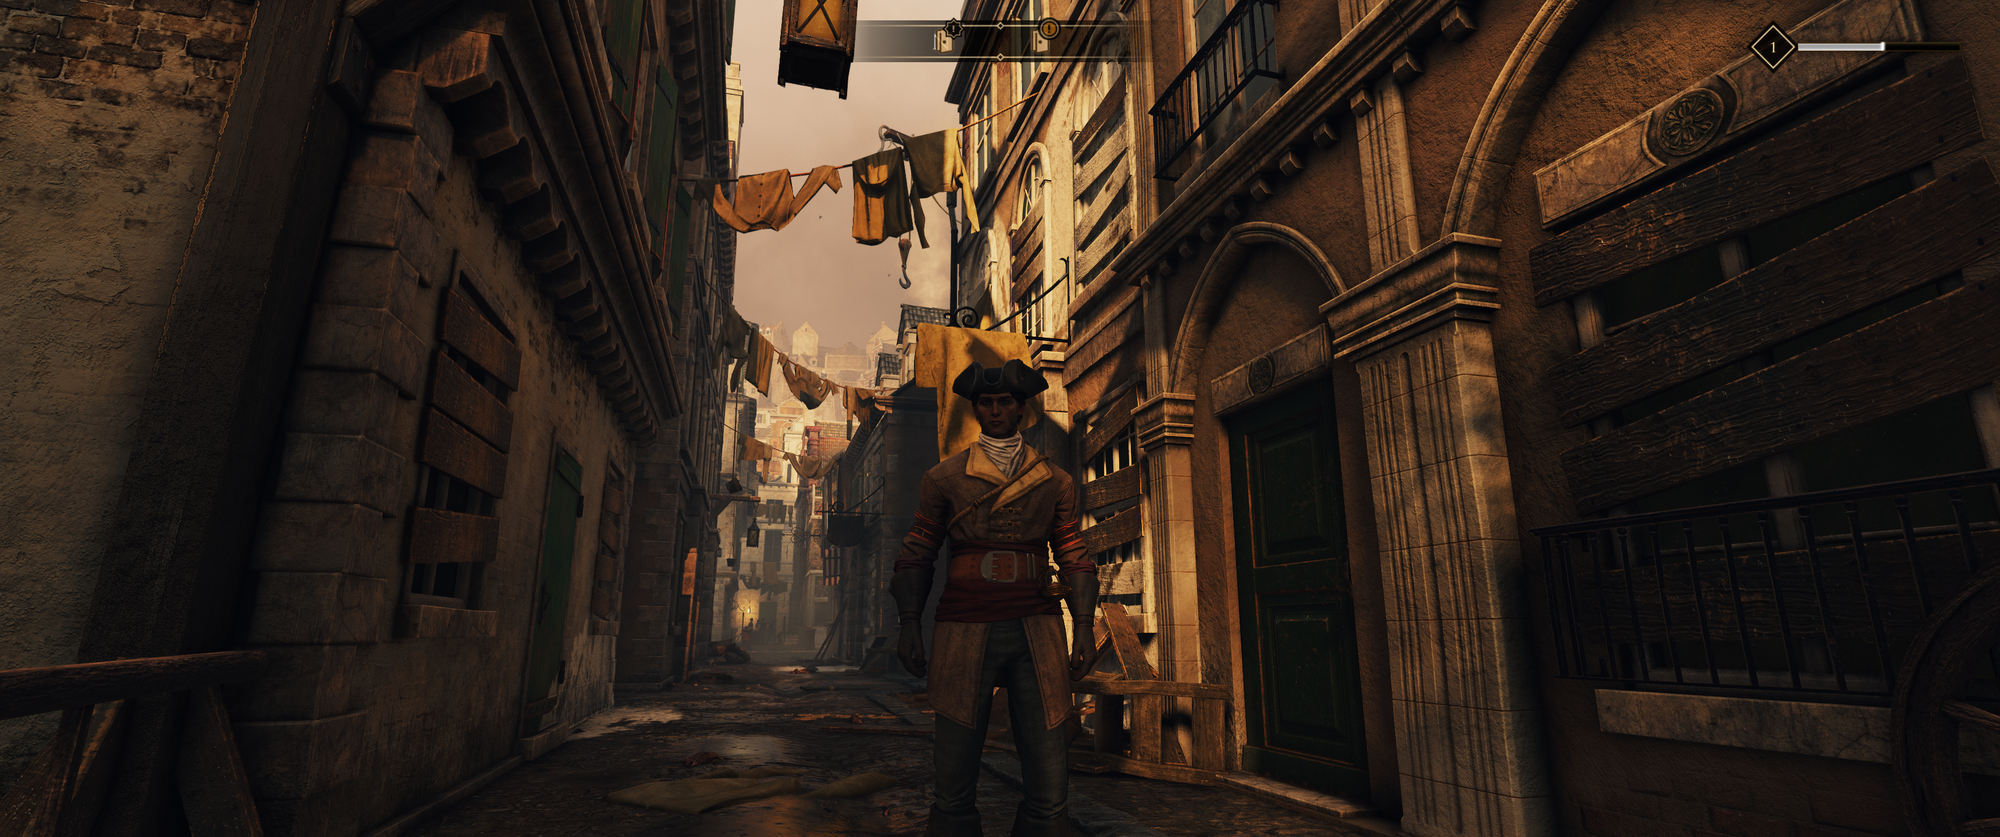 Greedfall Screenshot 2019.09.10 - 21.52.53.24.png